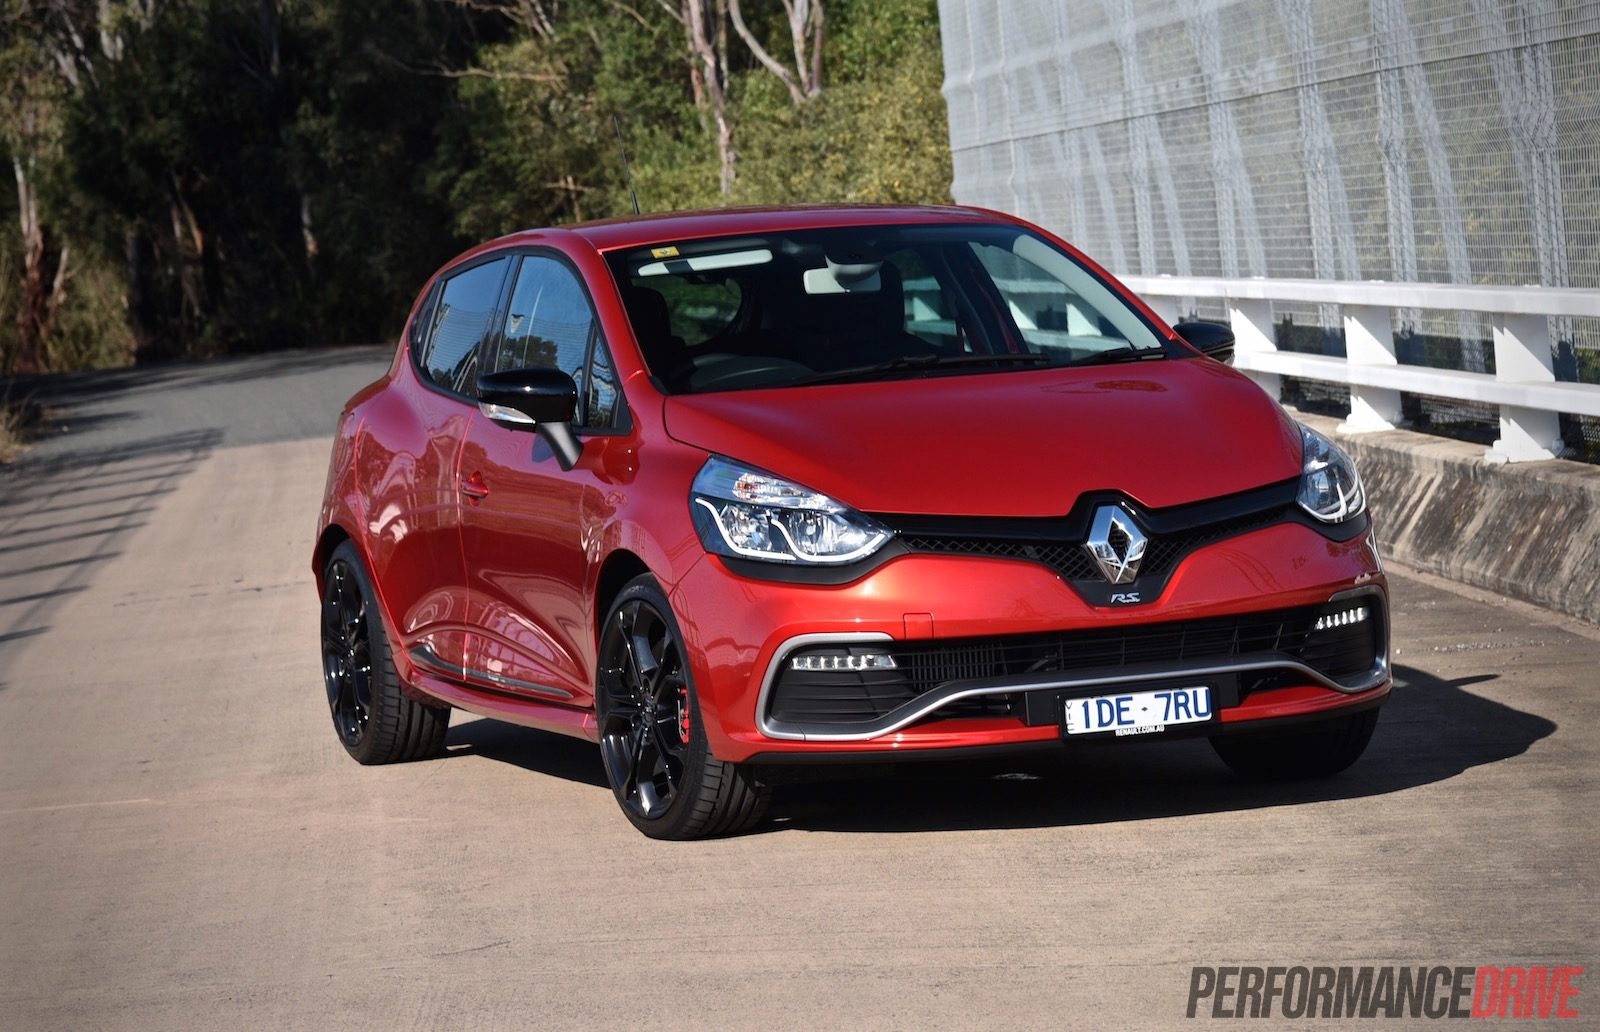 2015 Renault Clio R S  200 Cup review (video) | PerformanceDrive